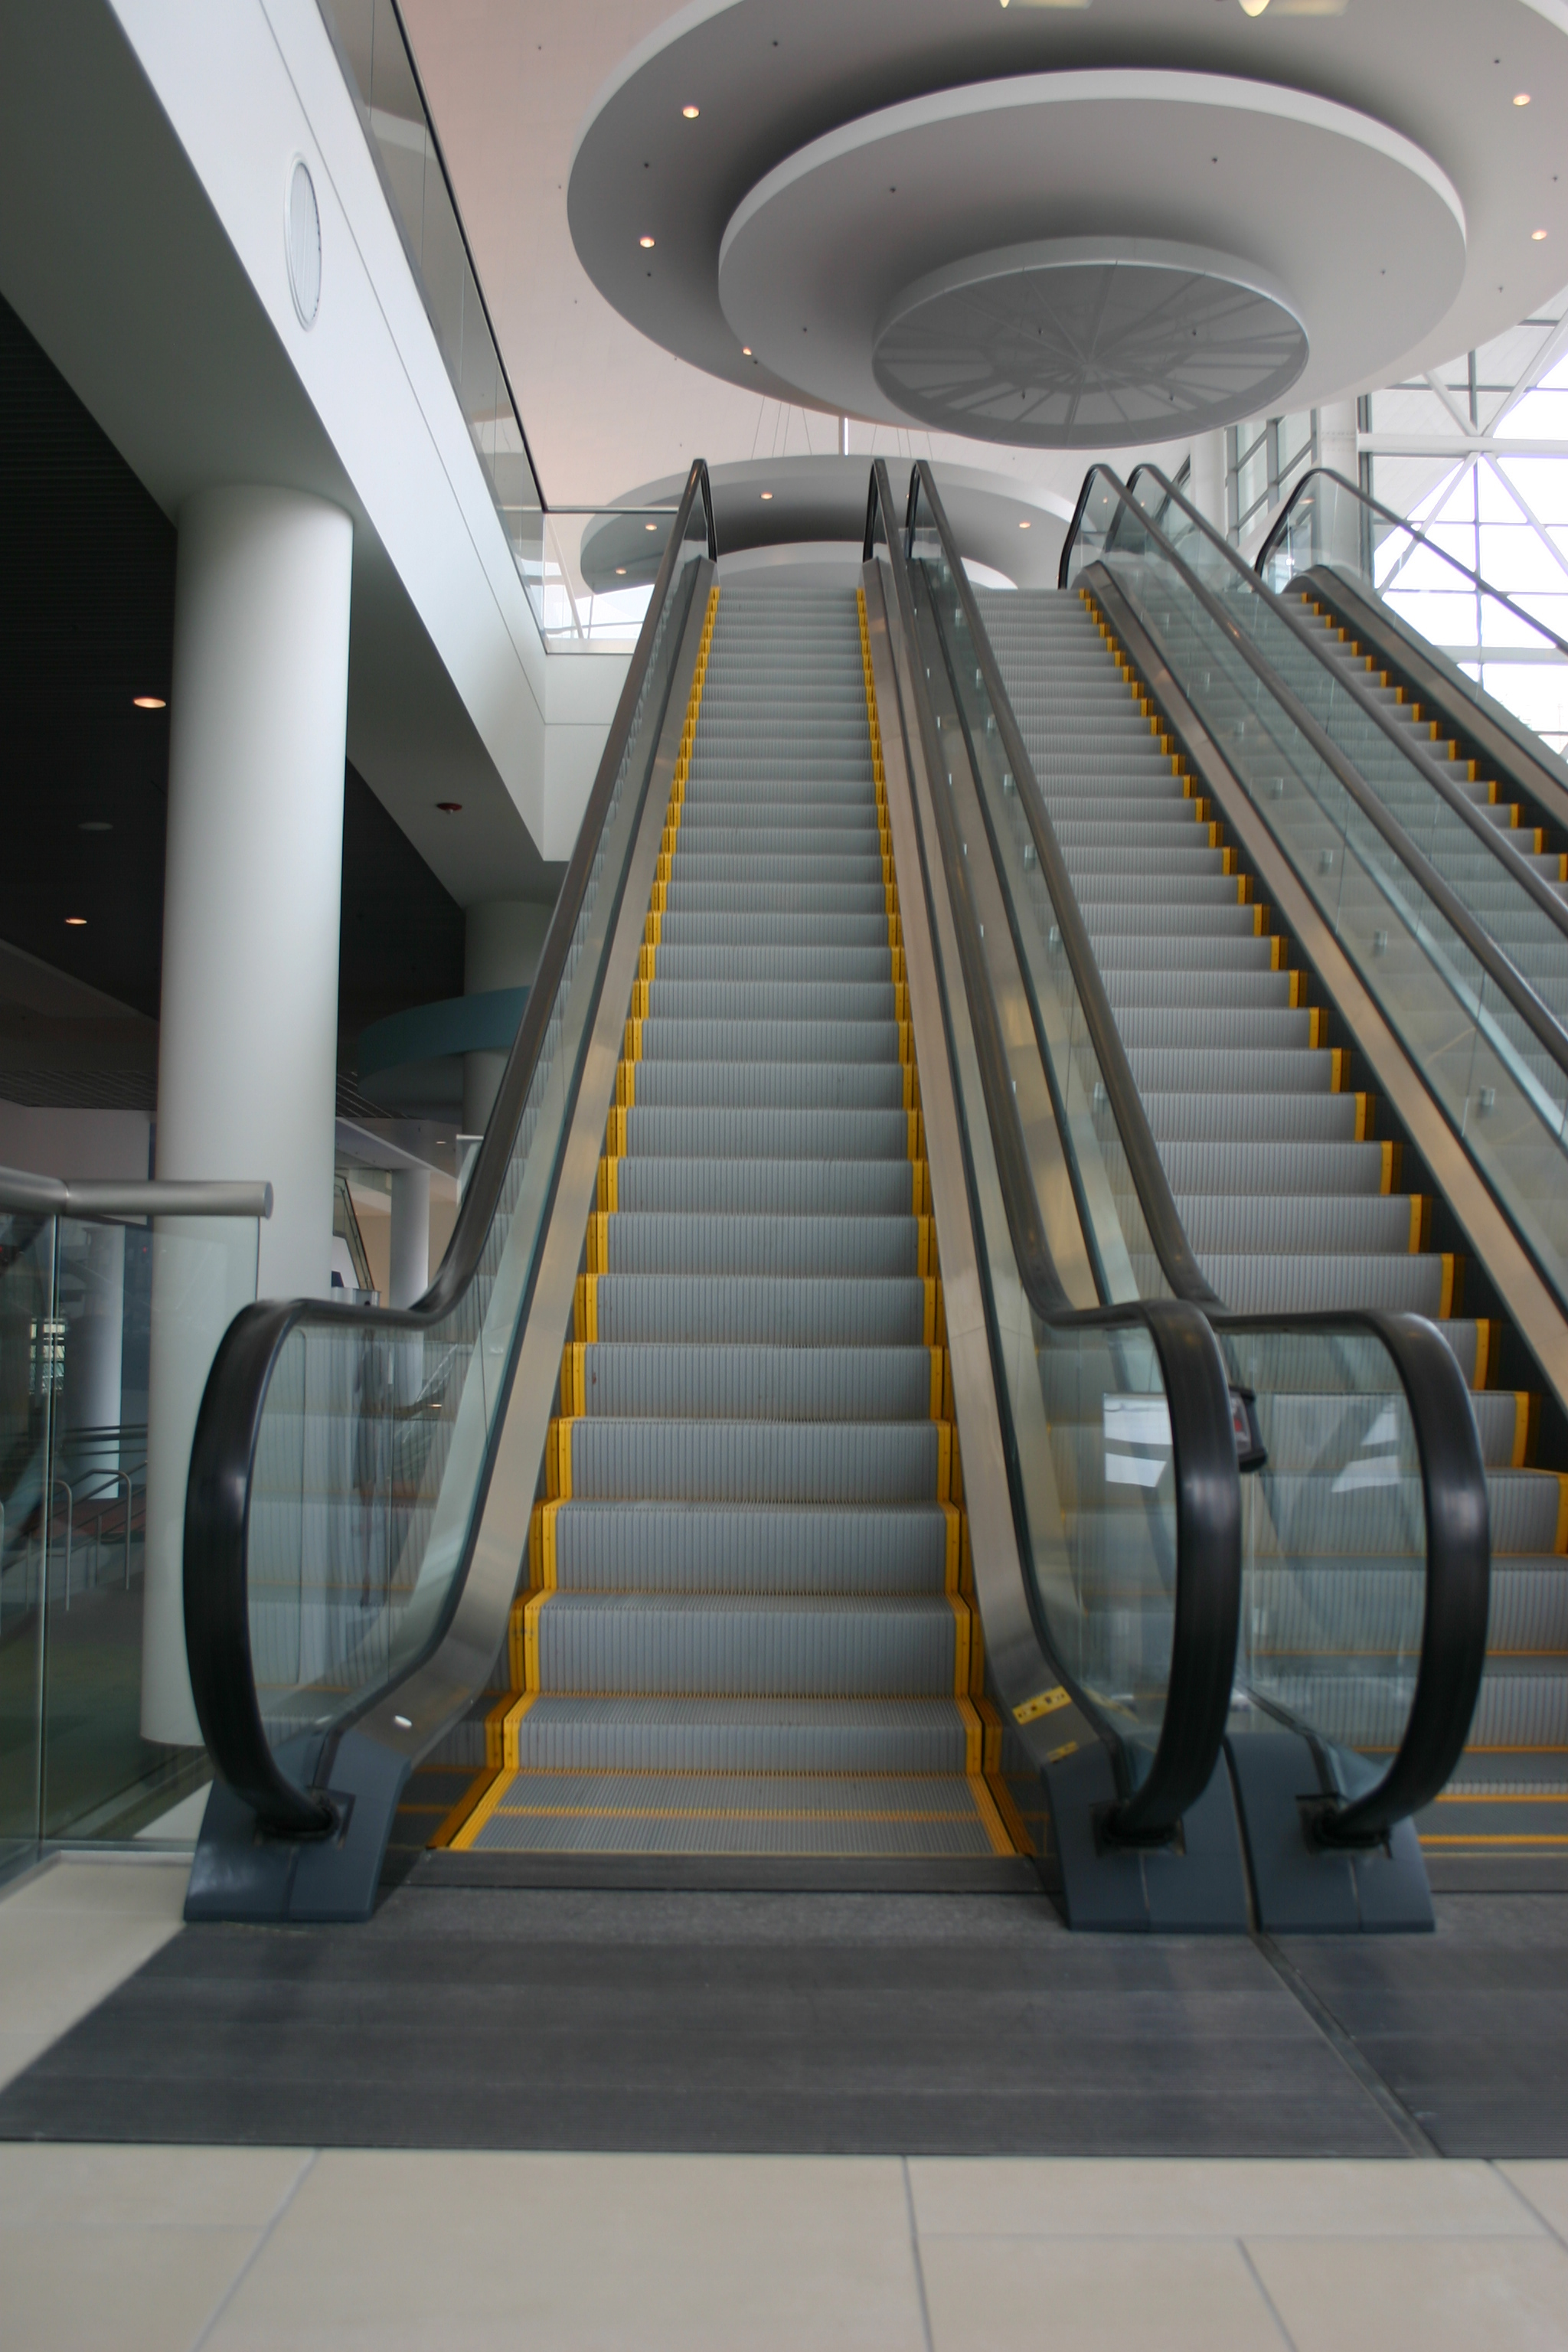 Laughing Escalator